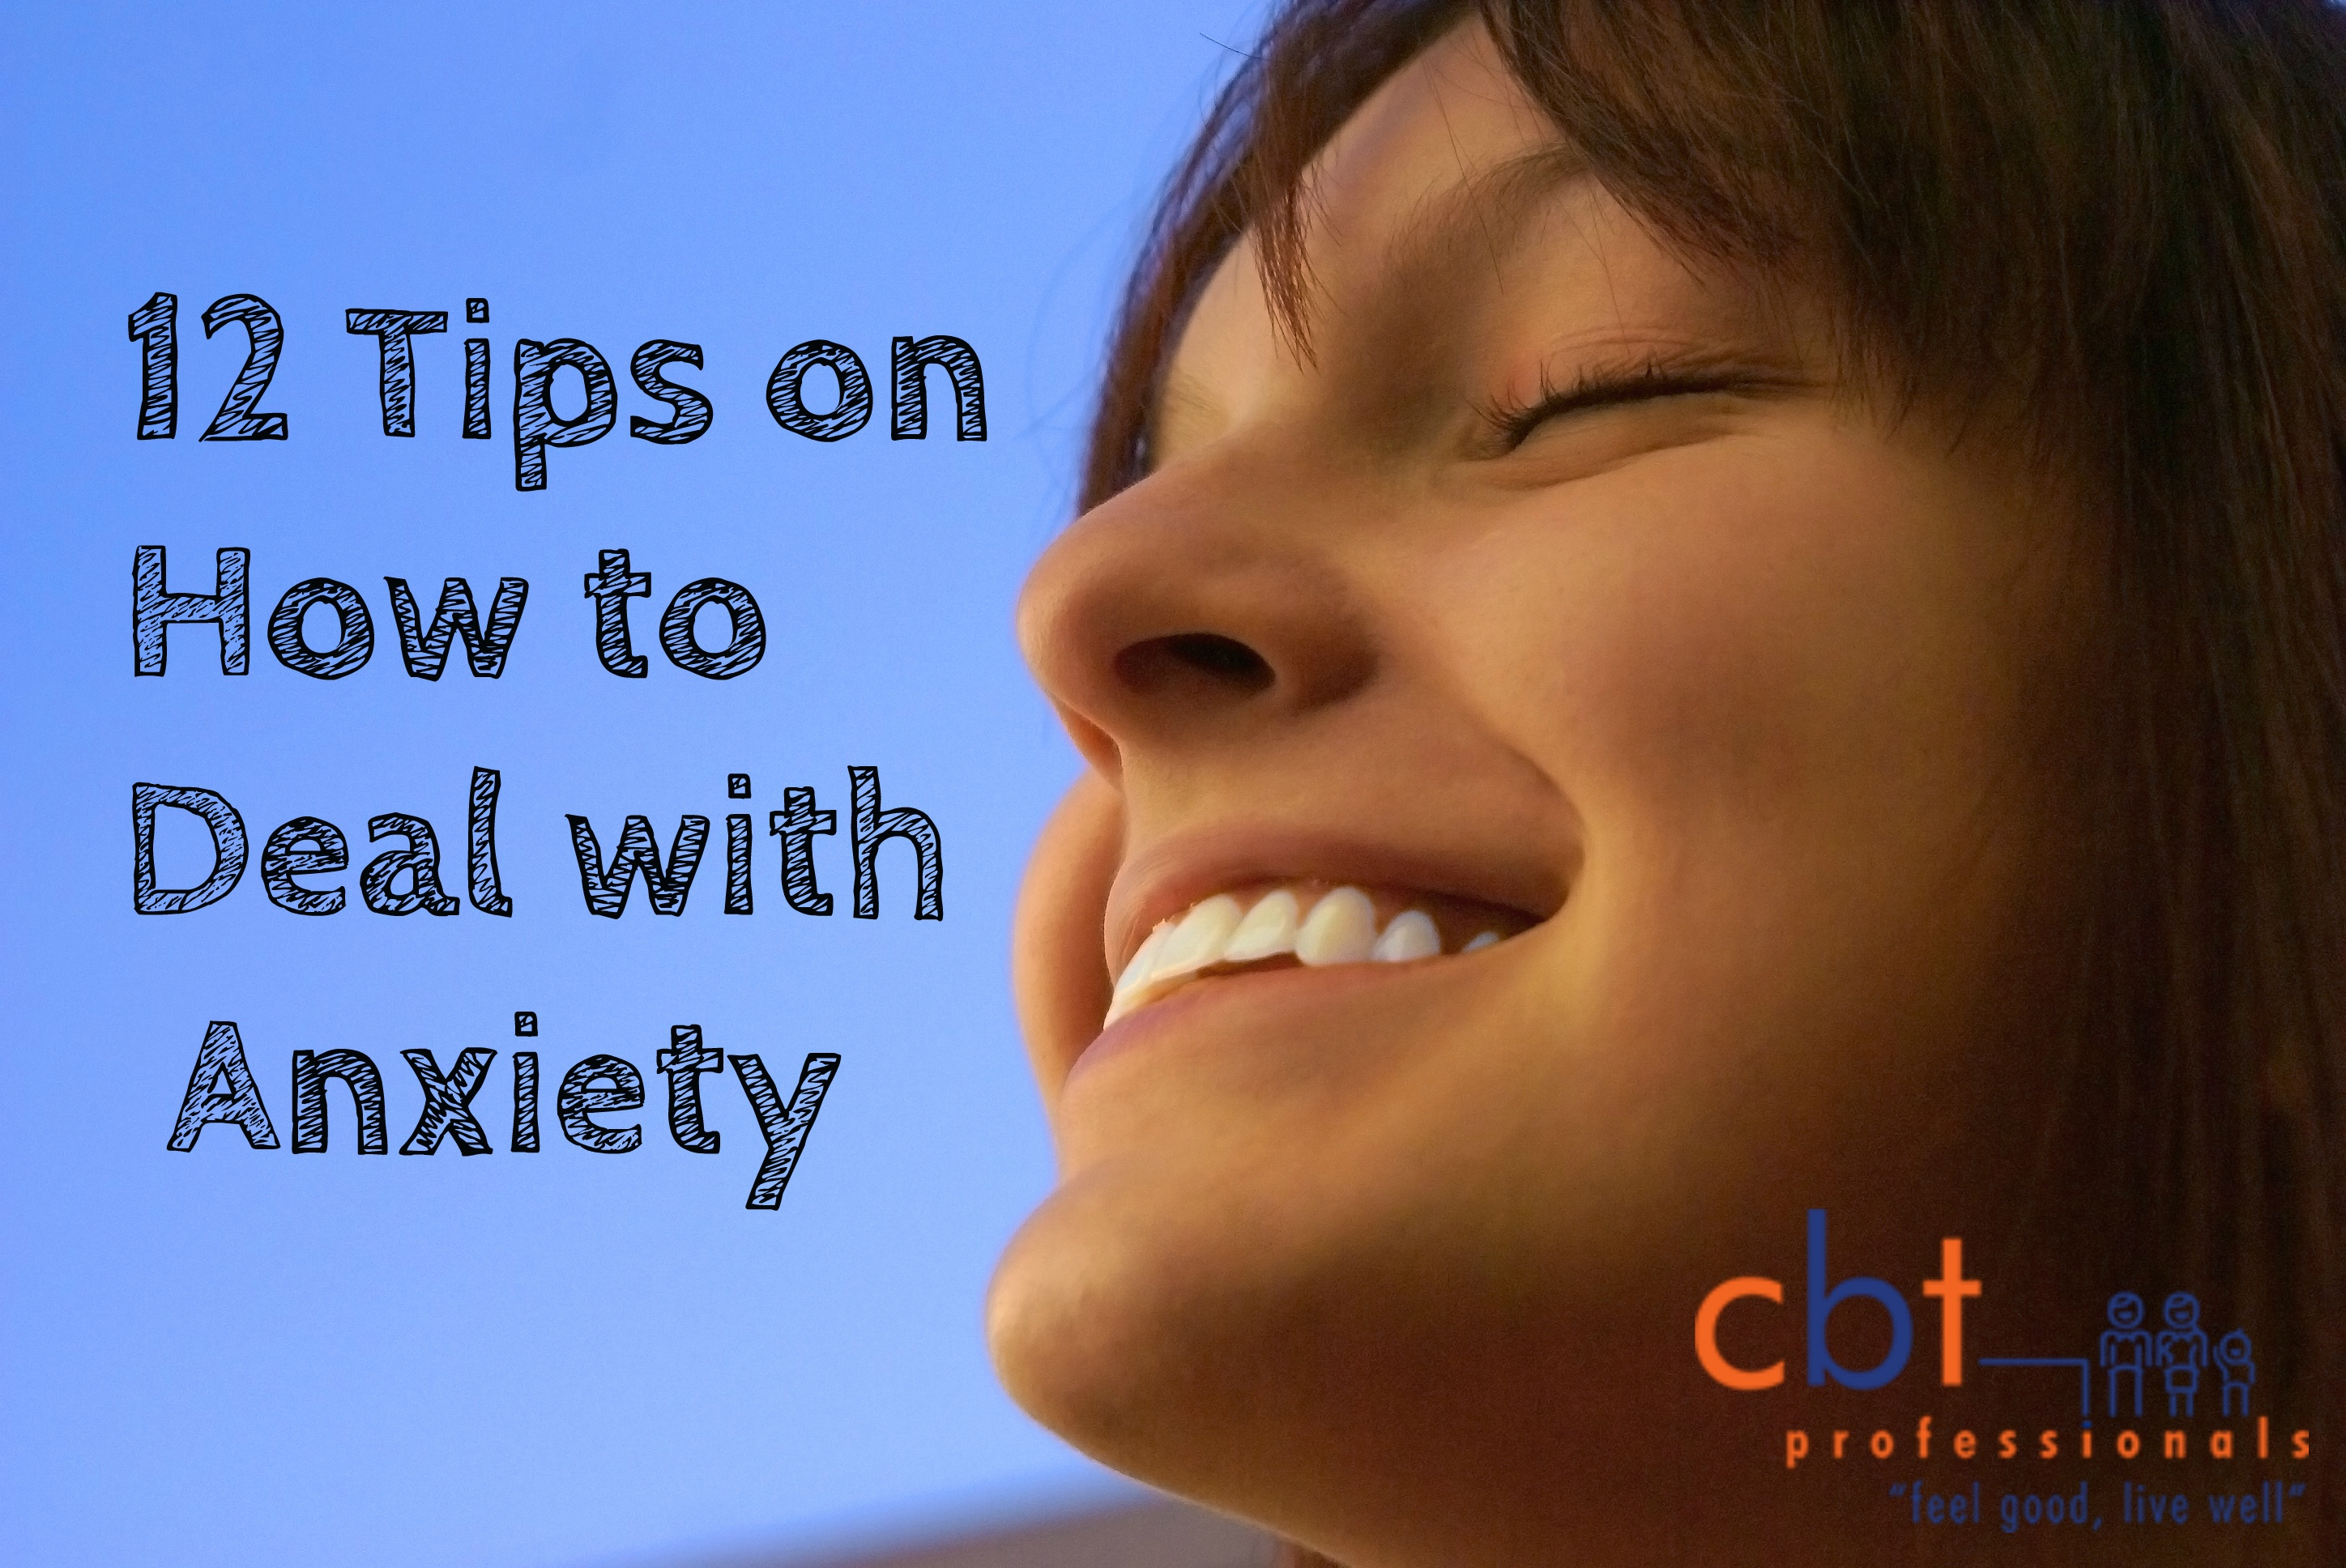 12 Tips on How to Deal with Anxiety